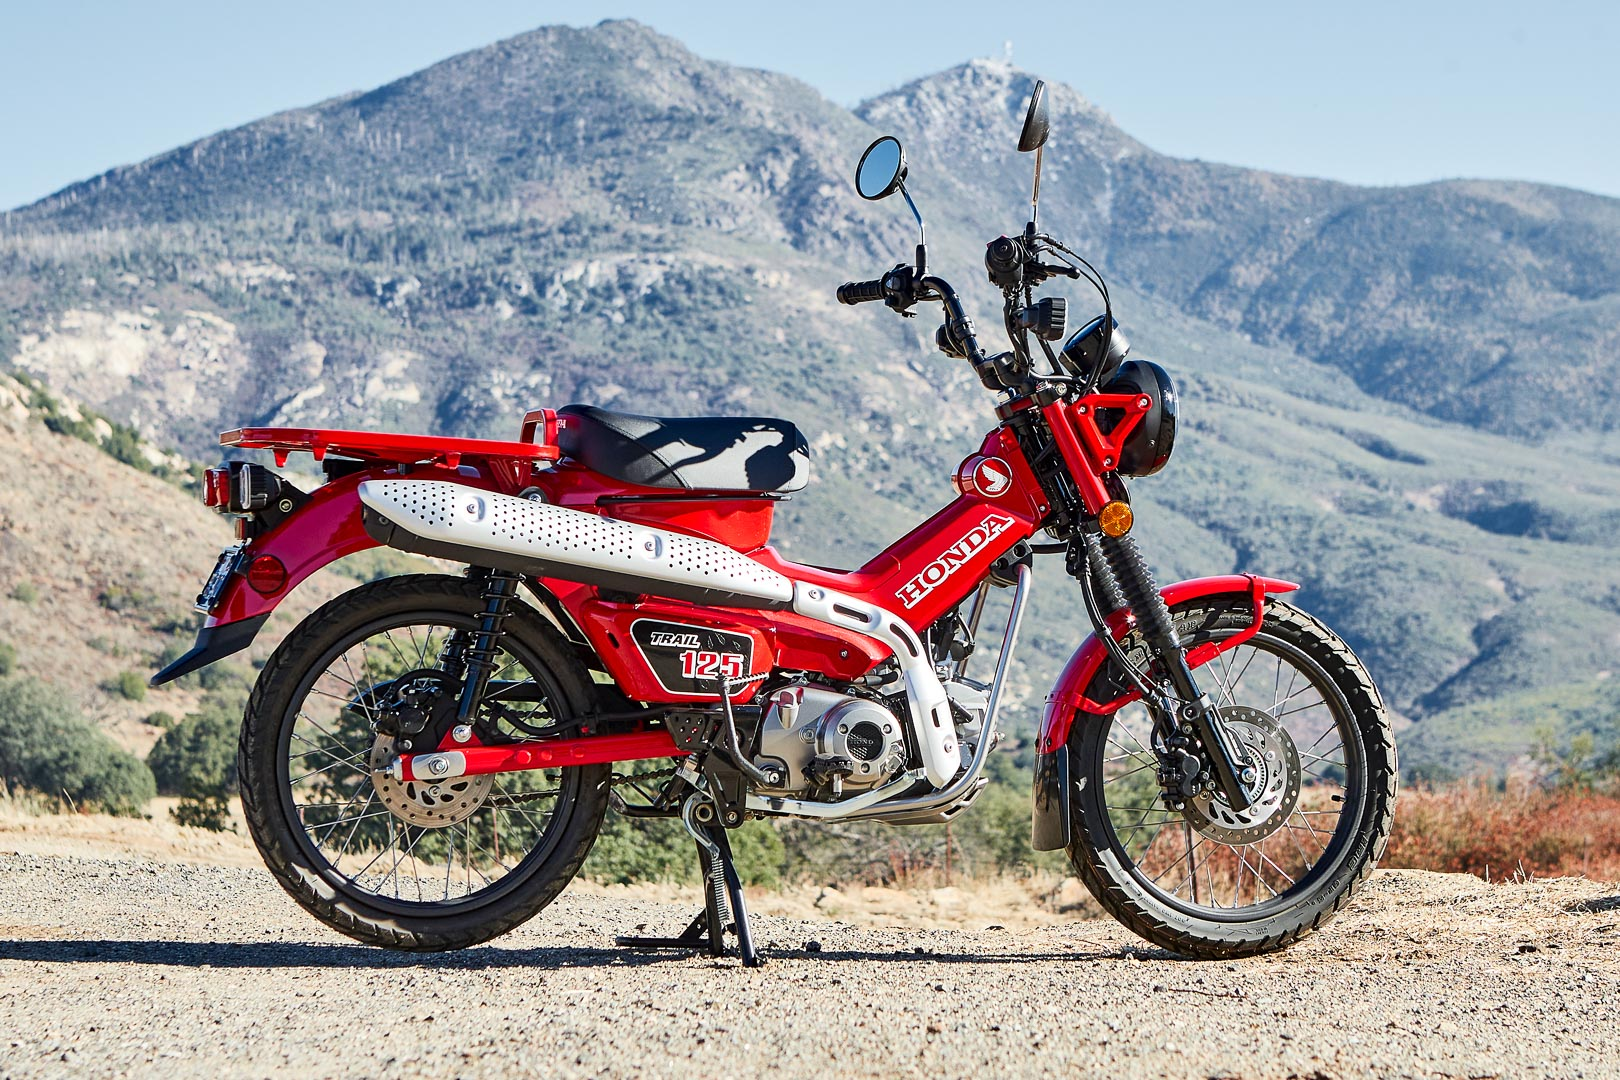 2021 Honda Trail 125 ABS Review: MSRP